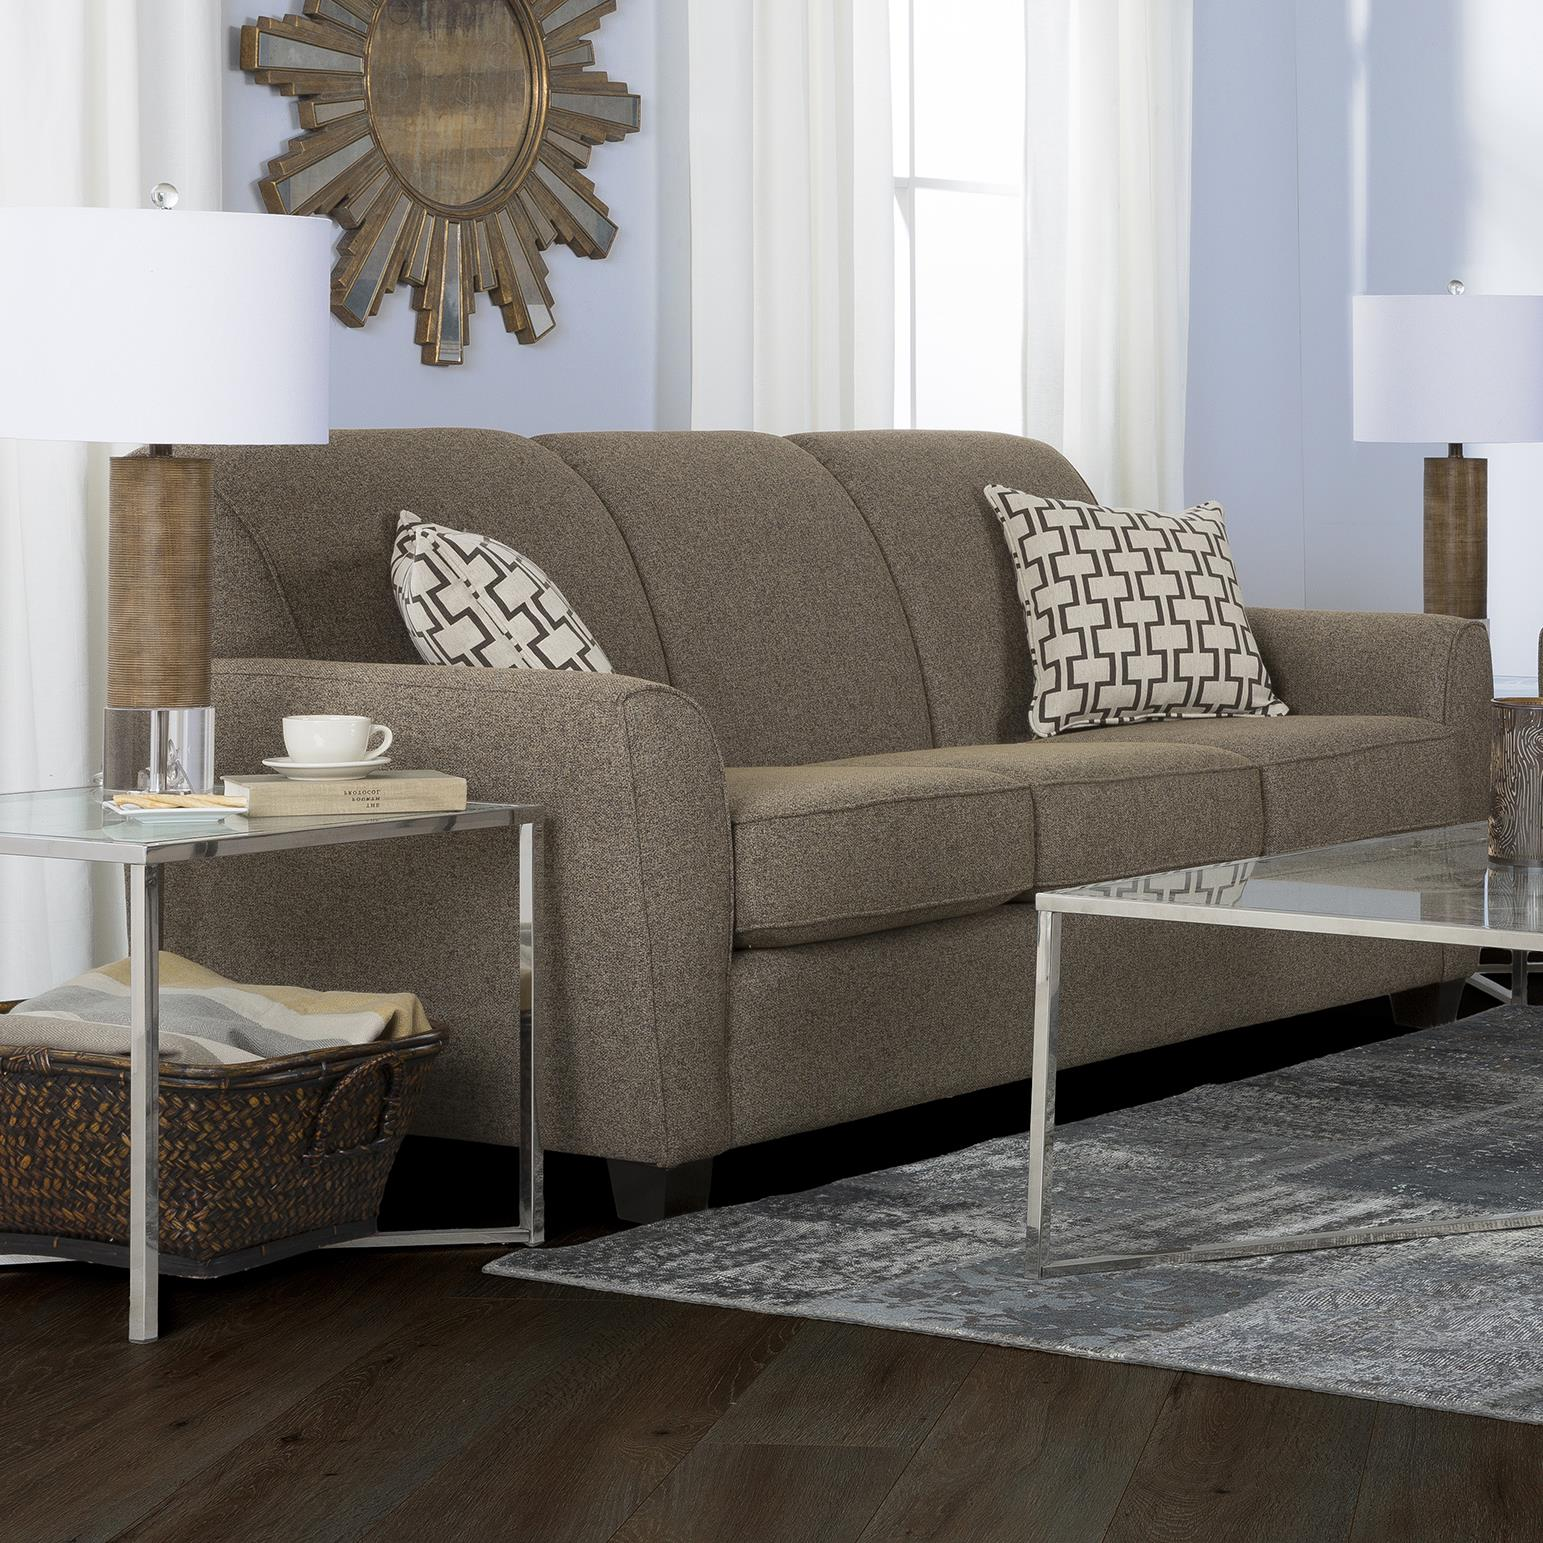 2404 Transitional Sofa by Decor-Rest at Wayside Furniture